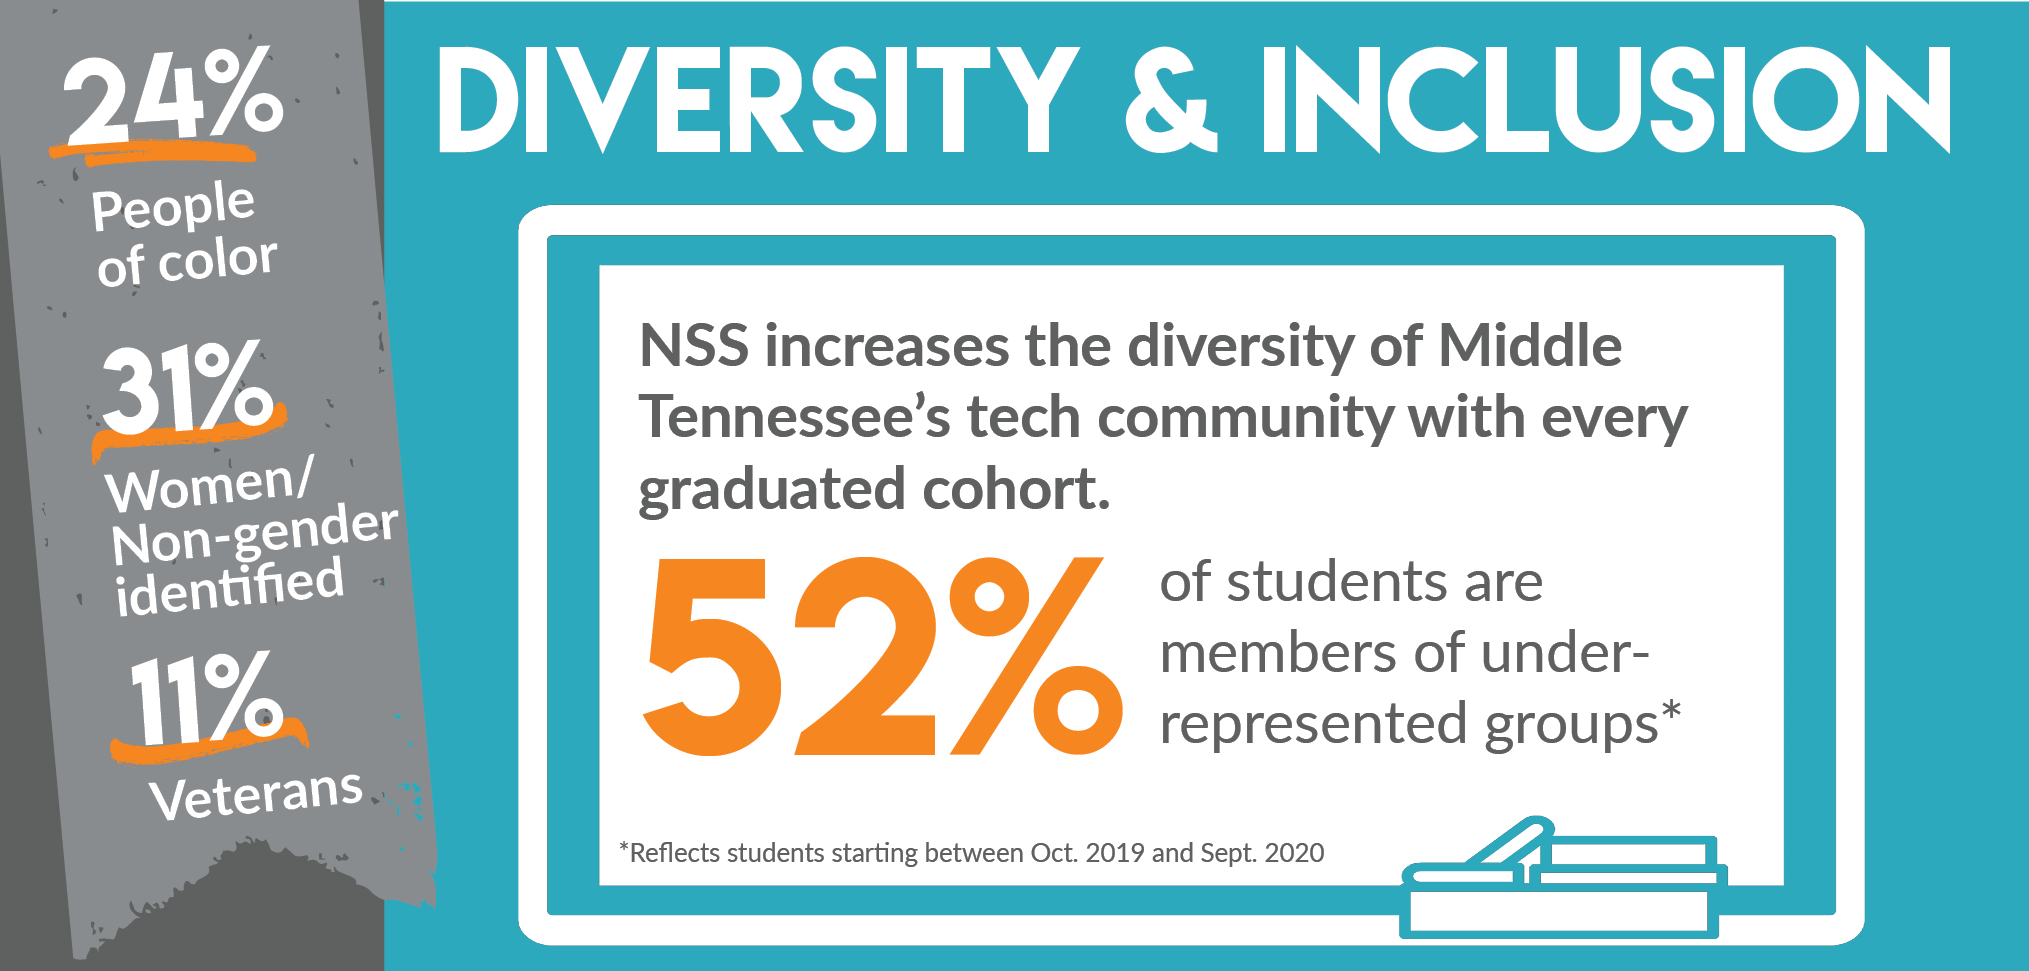 Diversity & Inclusion - 52% of students are members of under-represented groups